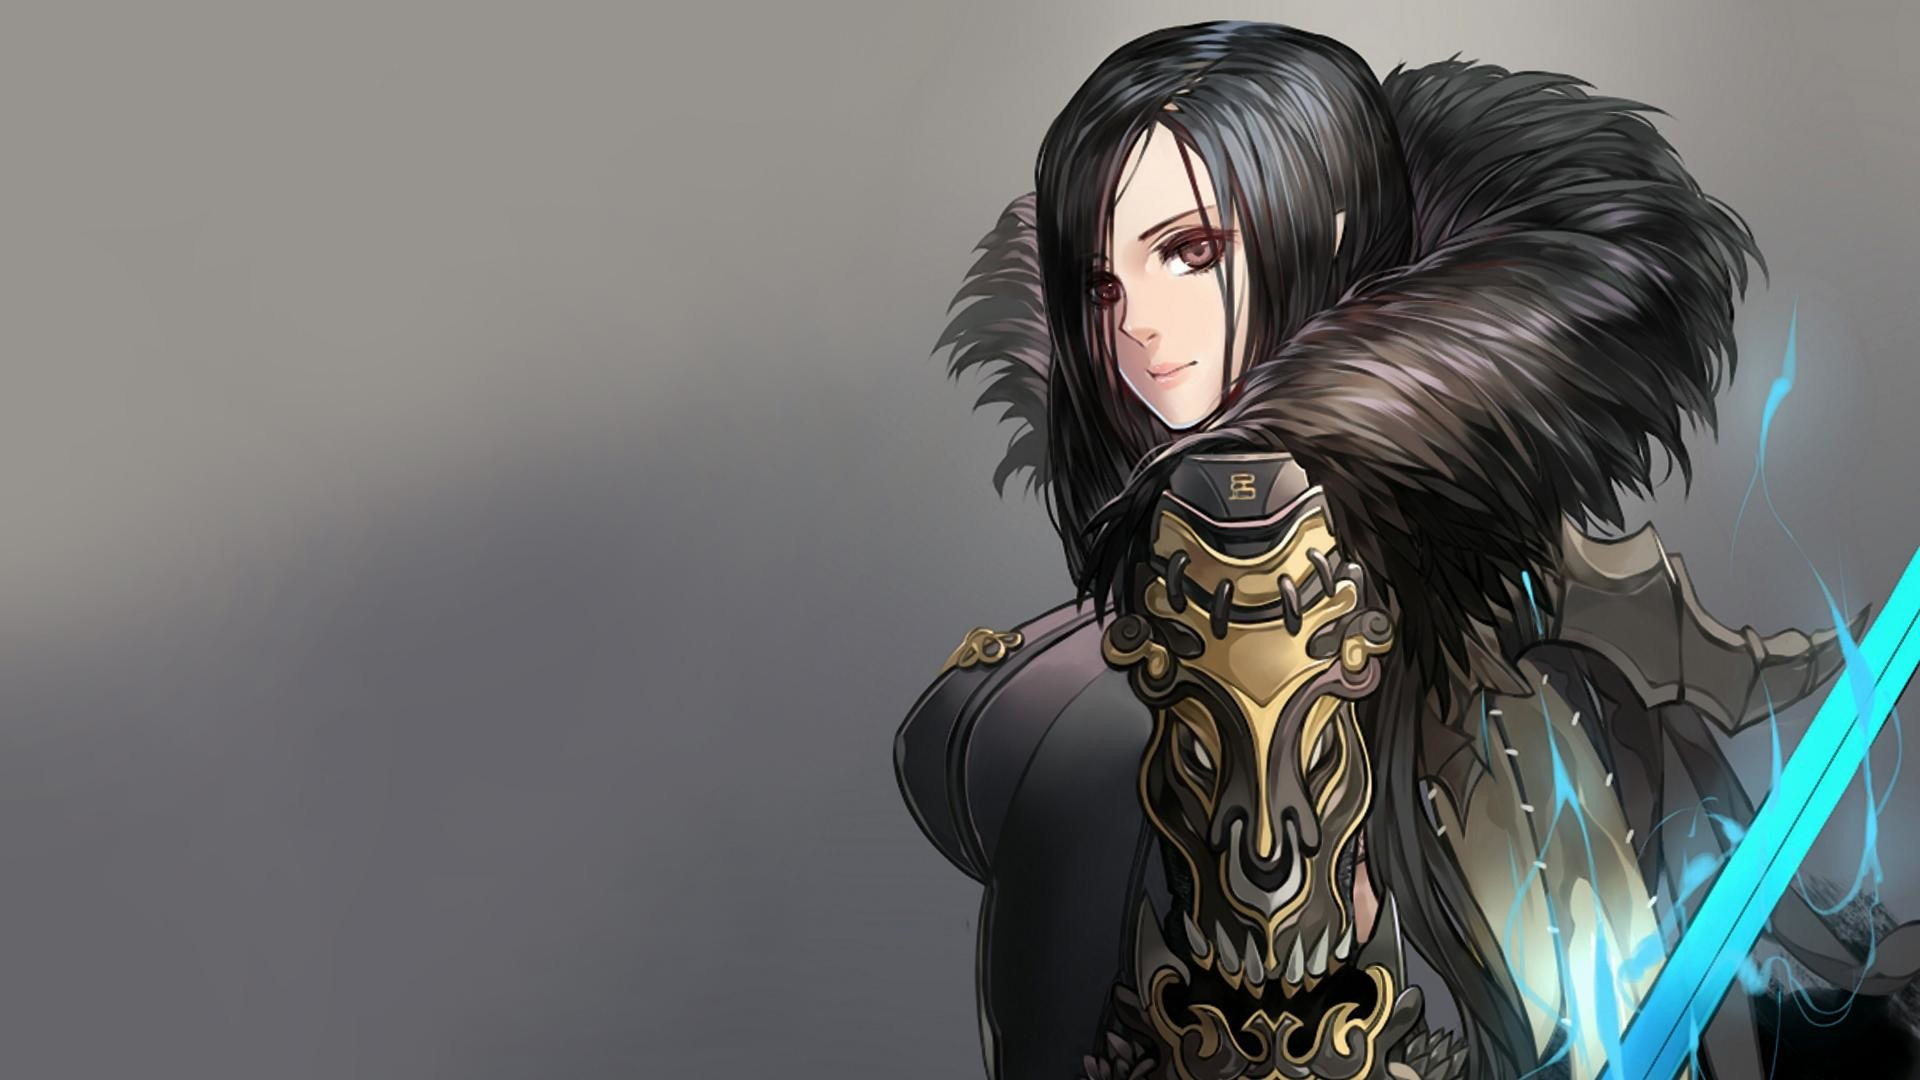 wallpaper.wiki-Blade-and-Soul-Full-HD-Background-